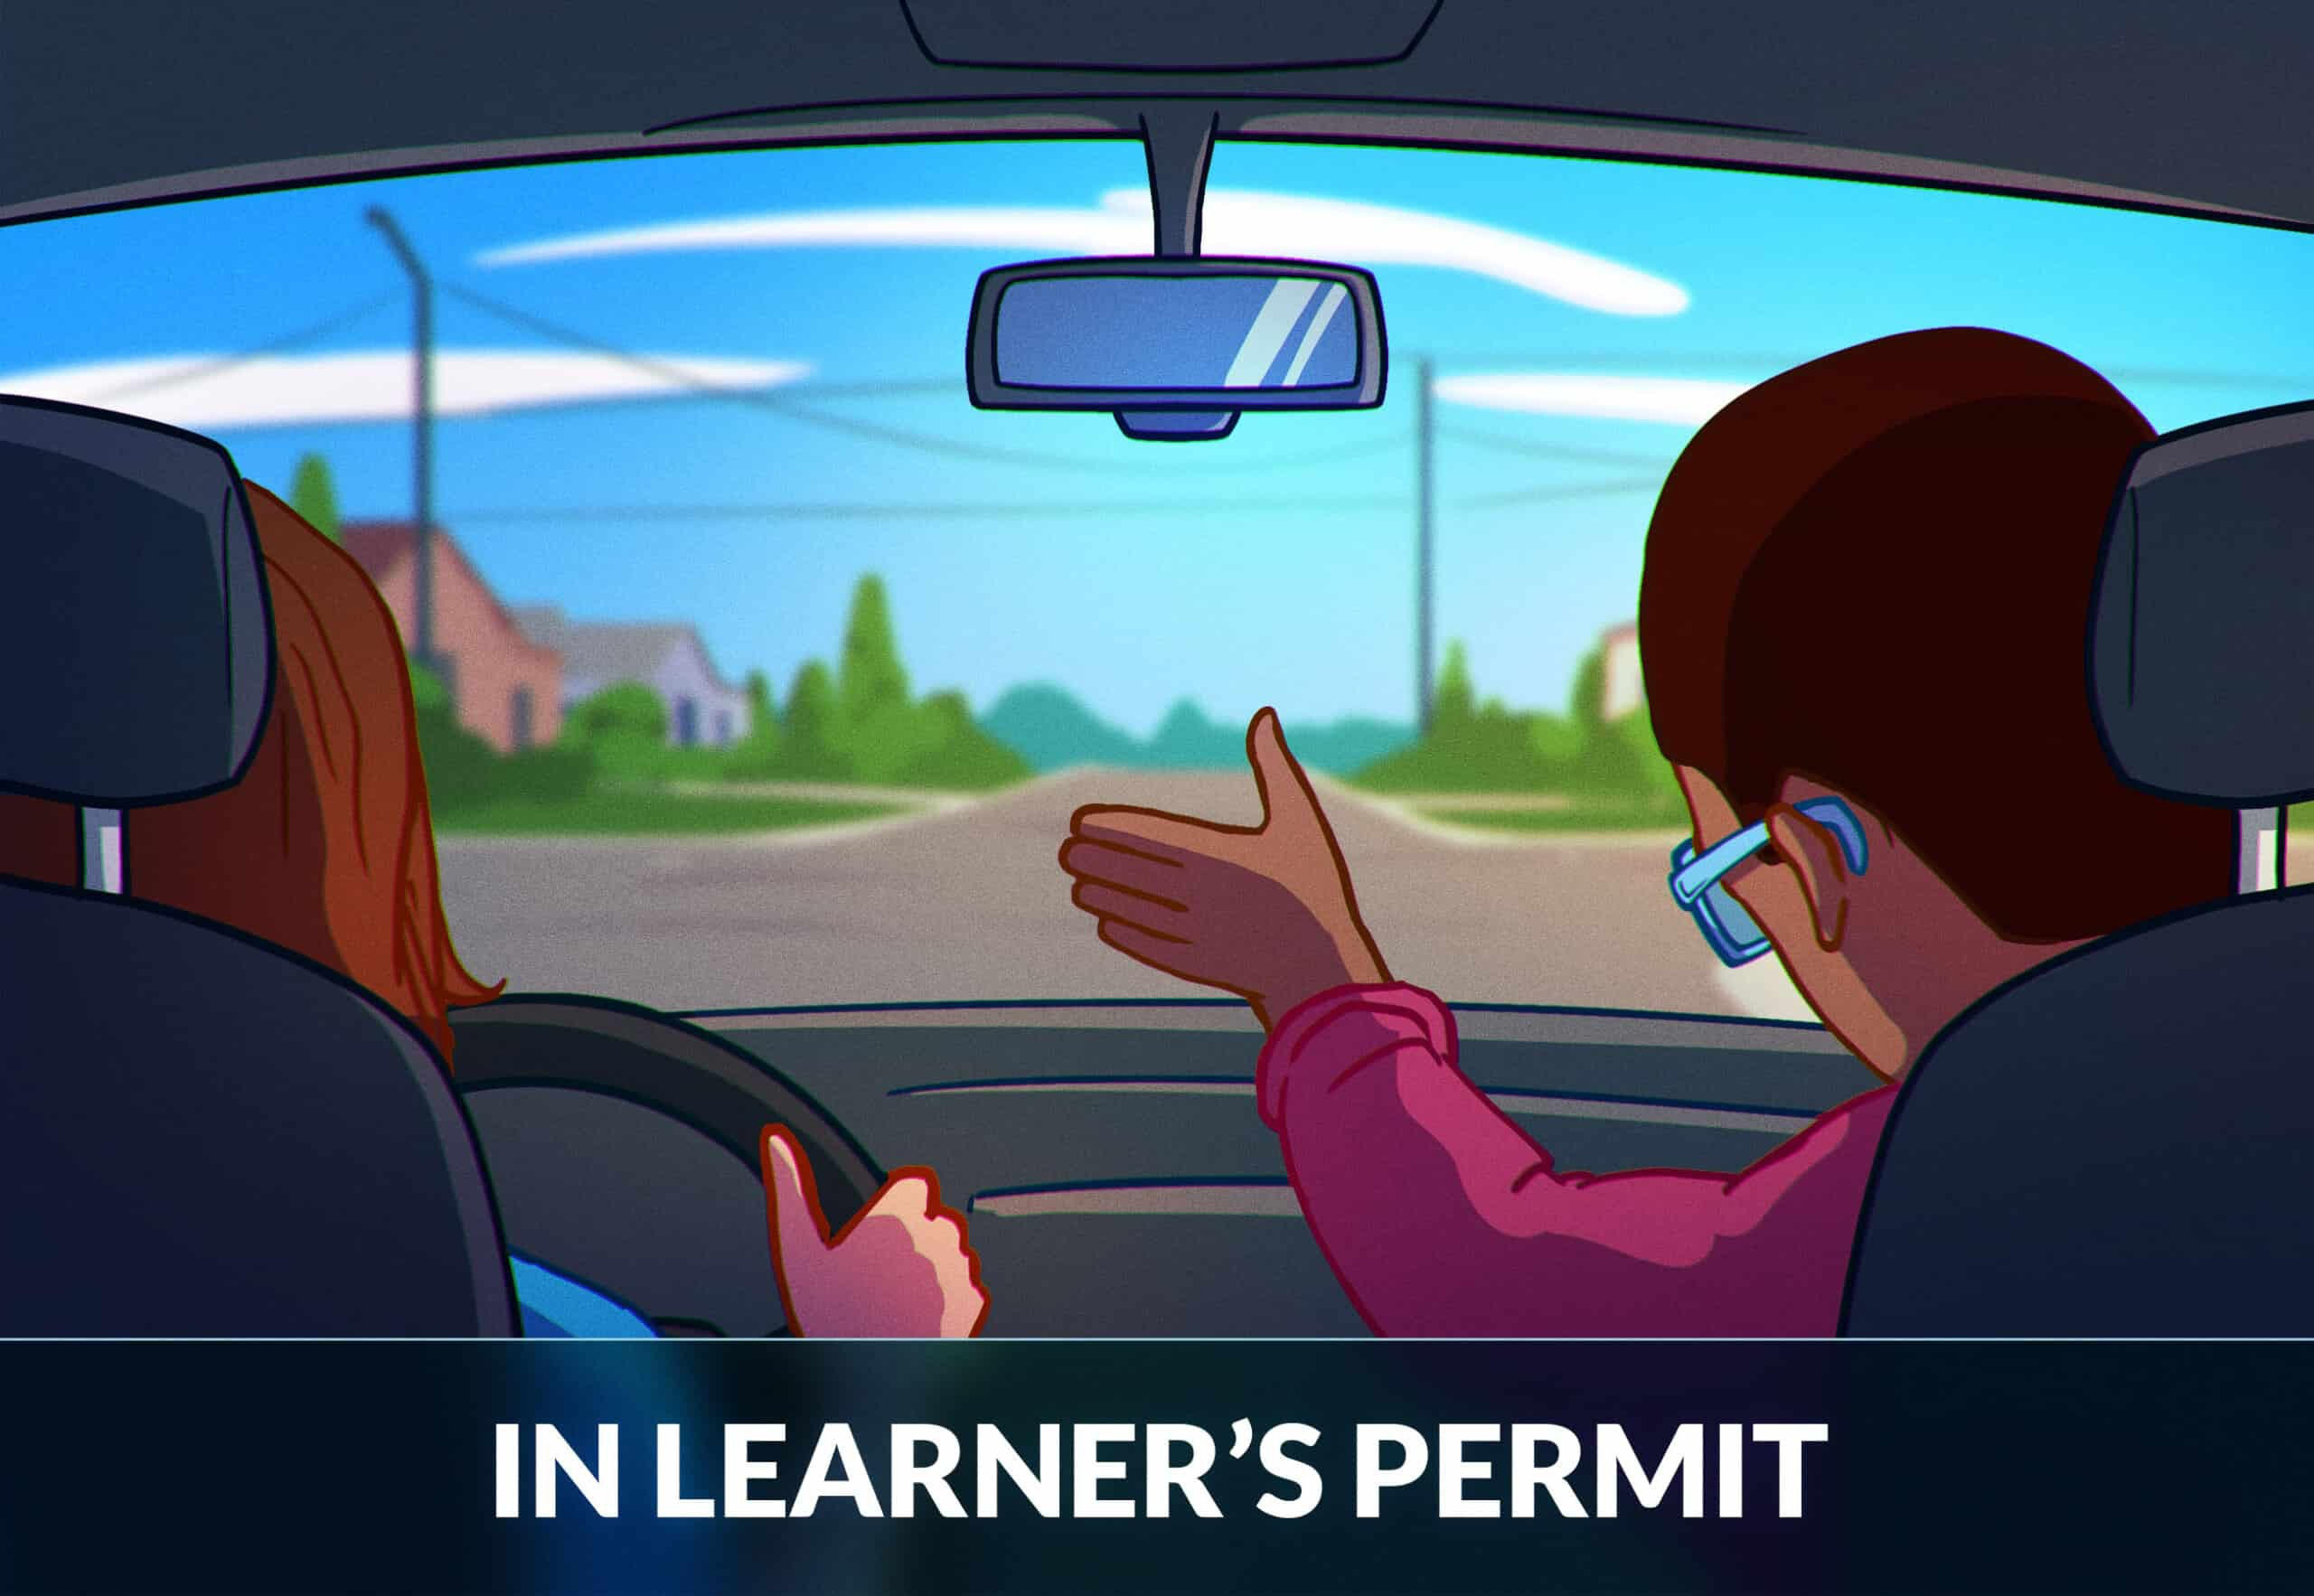 Indiana Learner's Permit